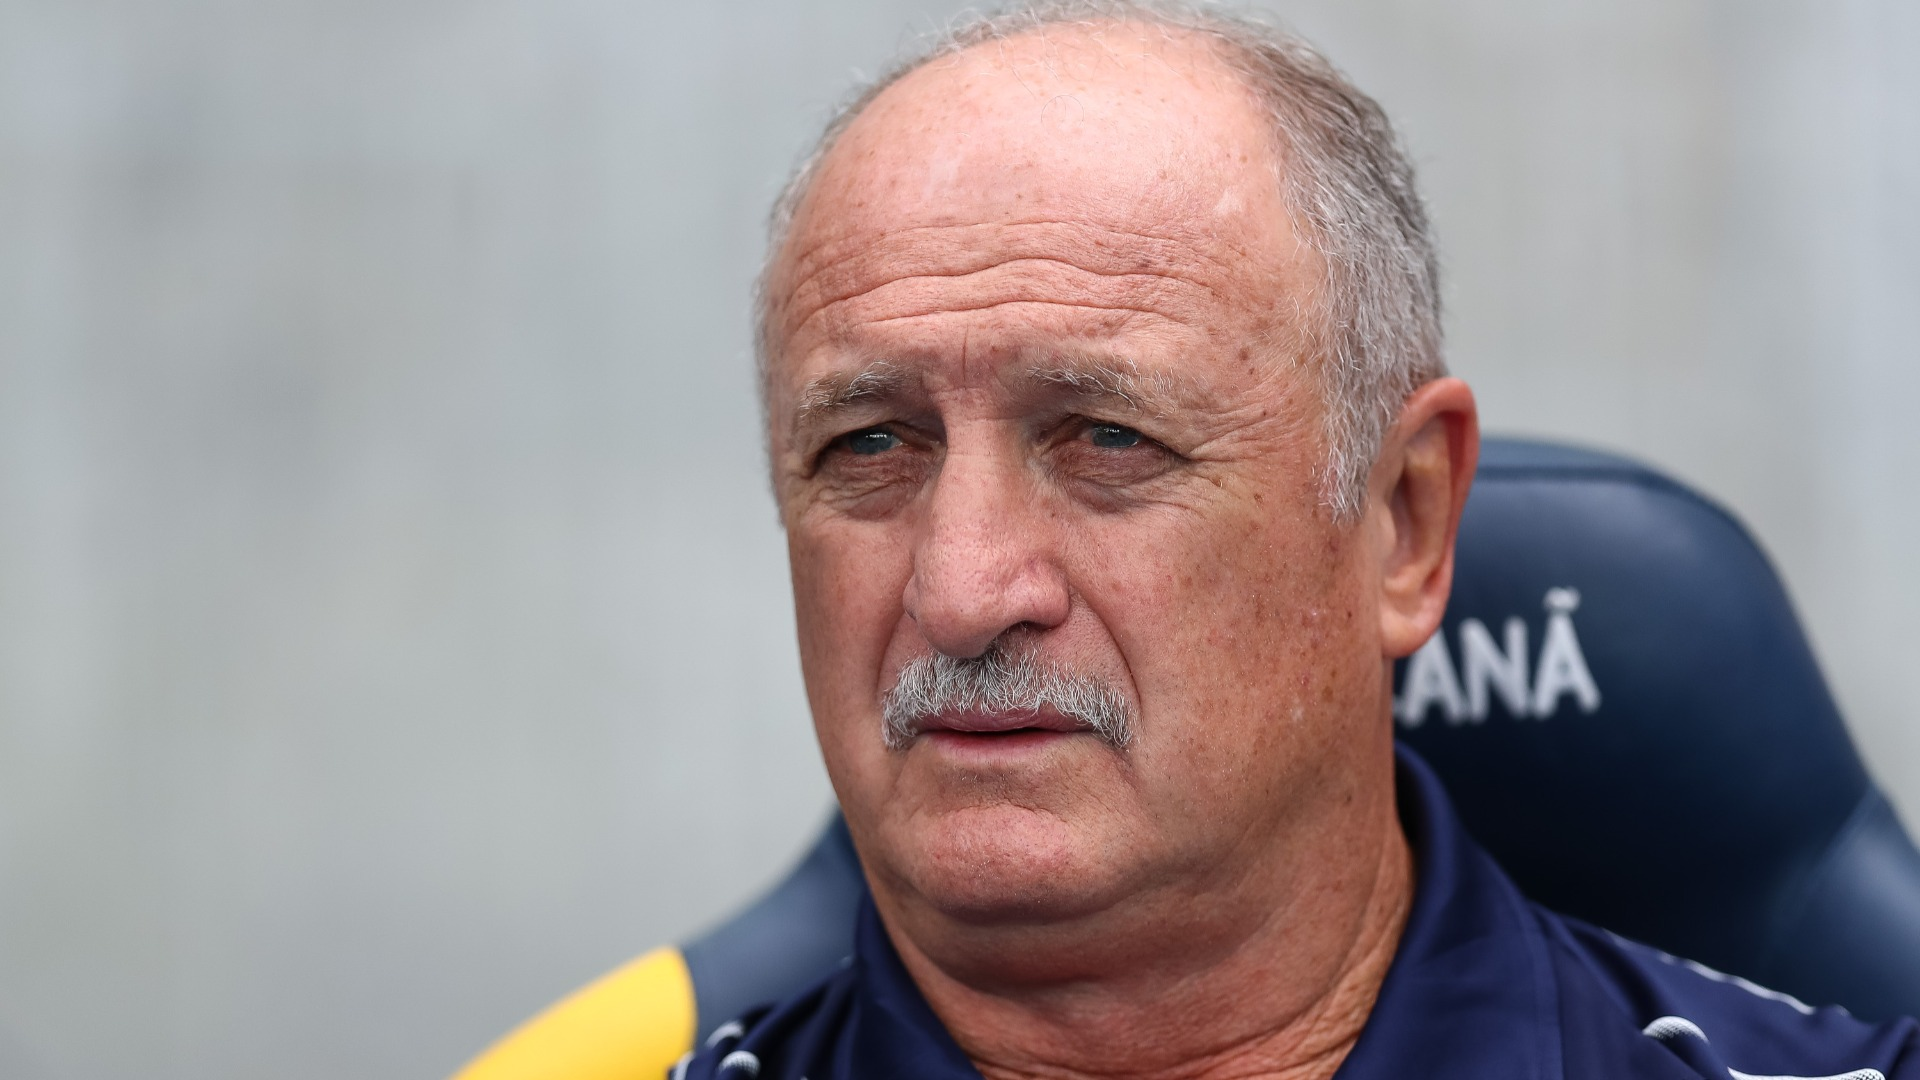 Scolari leaves Cruzeiro after steering them to safety